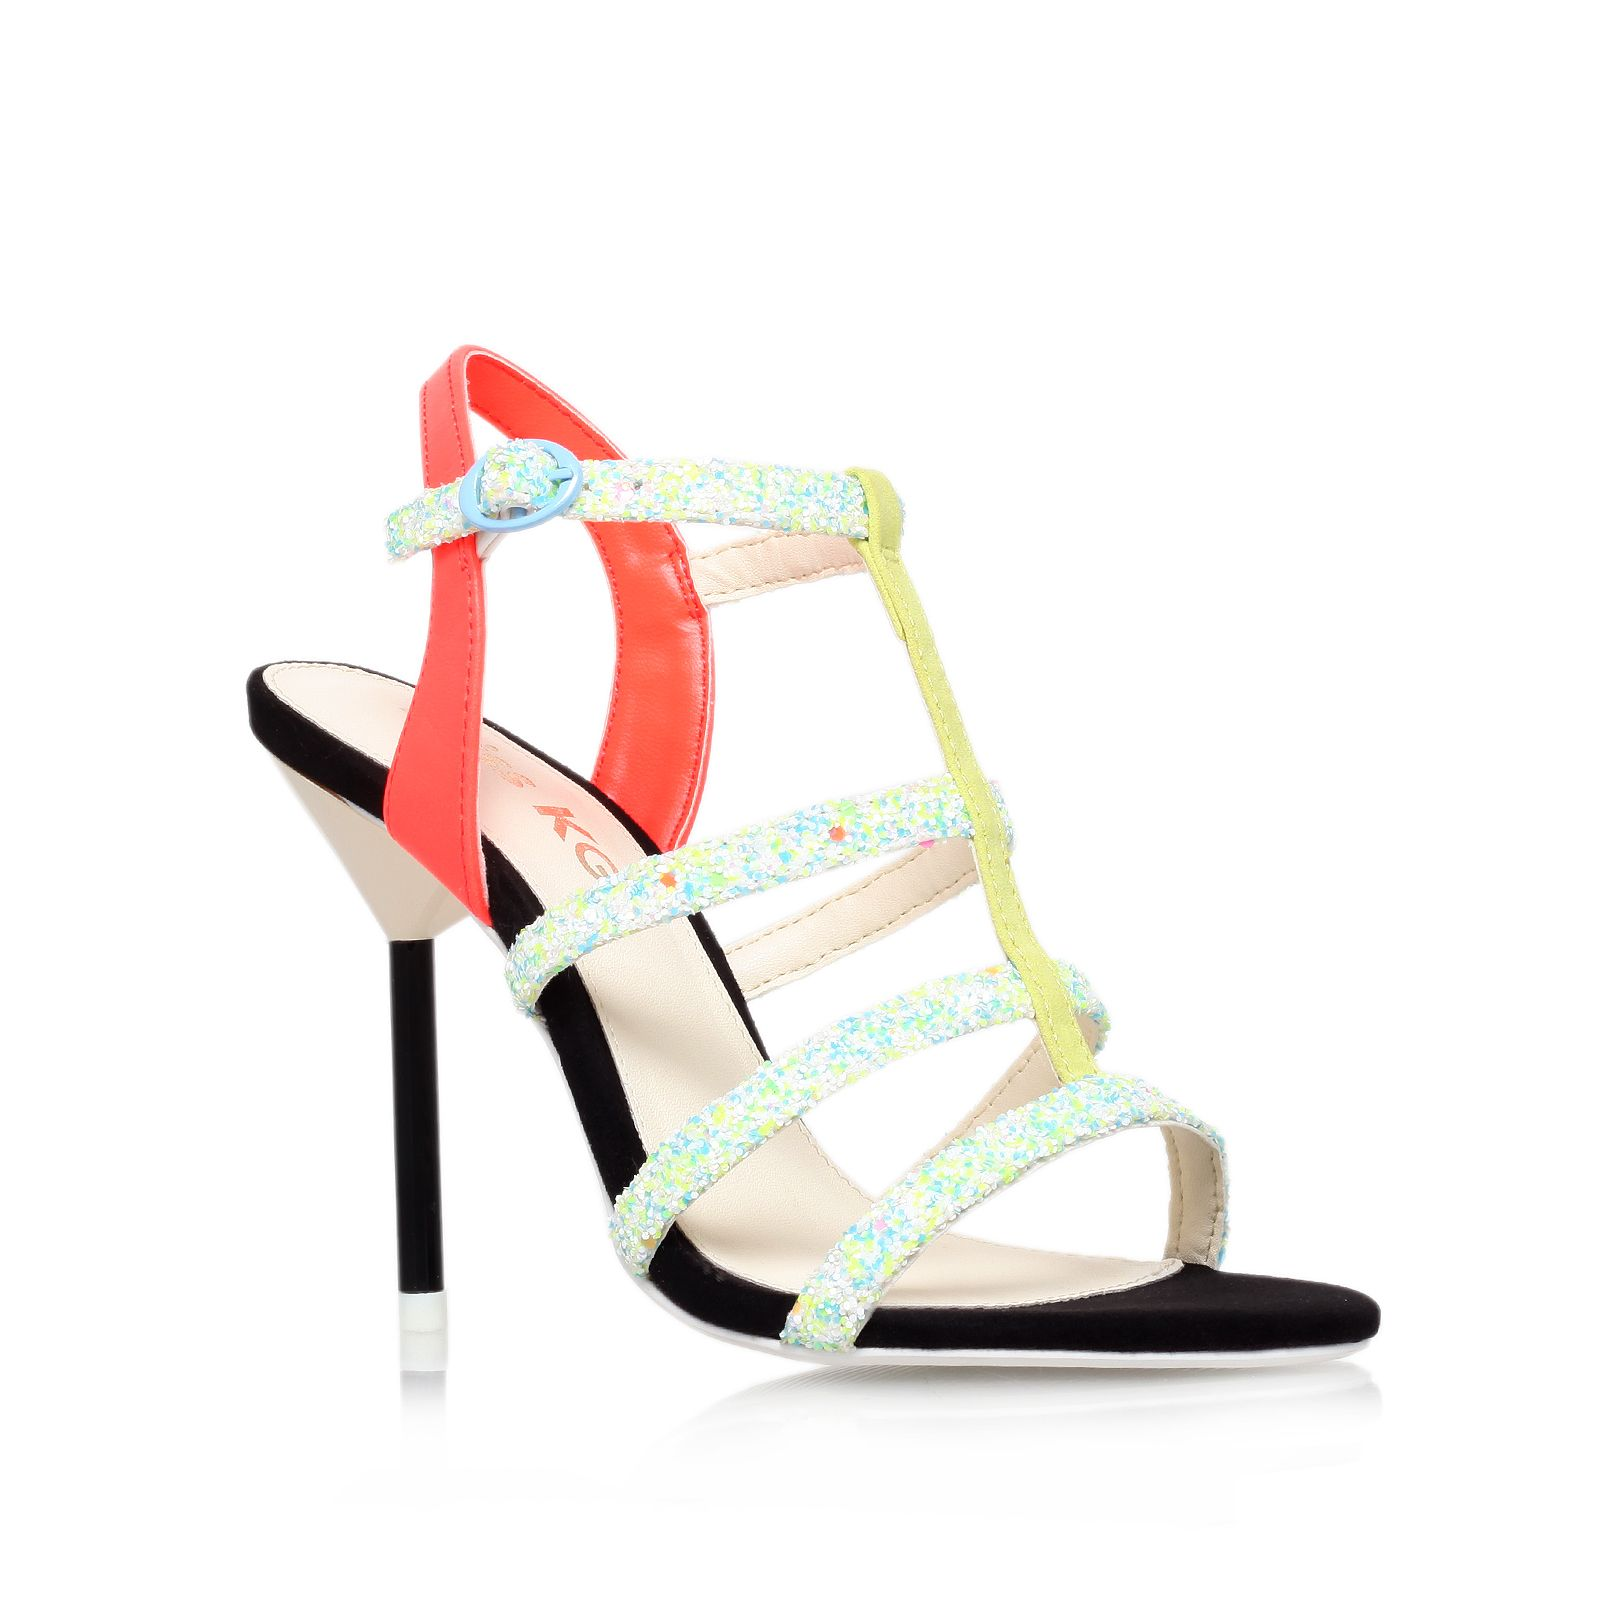 Elvie high heel sandals